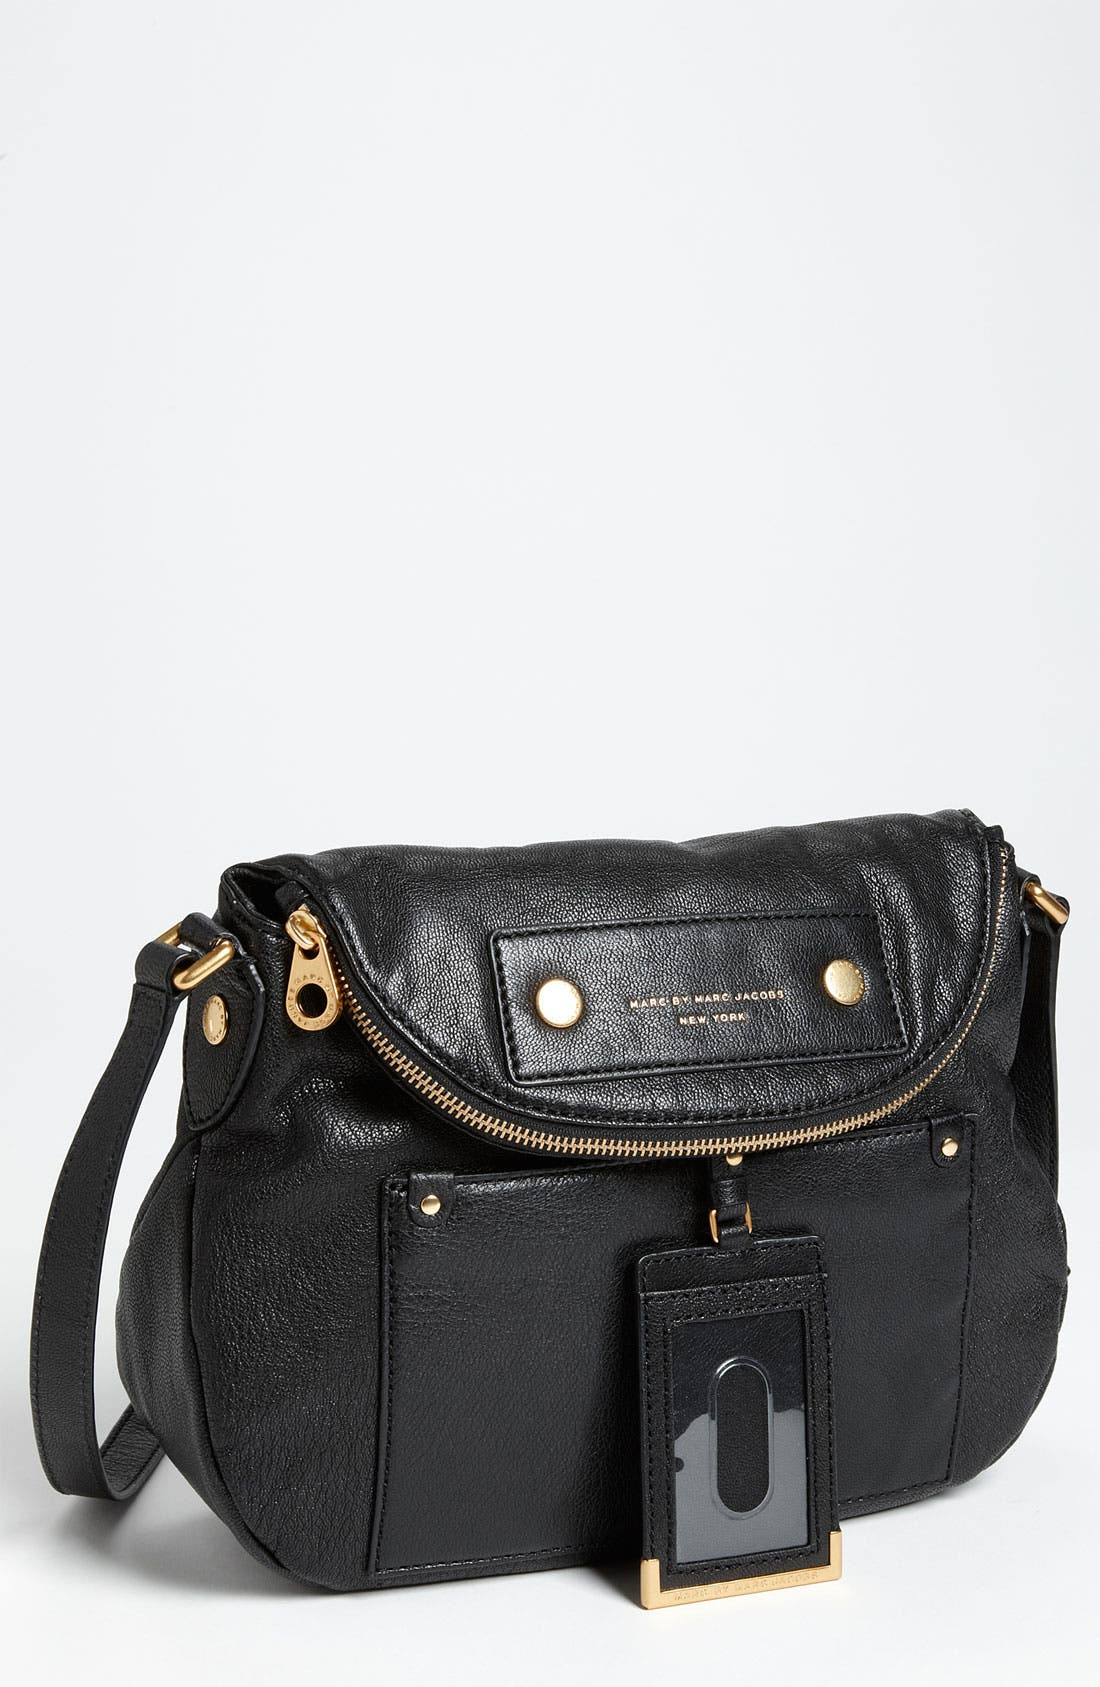 Alternate Image 1 Selected - MARC BY MARC JACOBS 'Preppy Natasha' Leather Crossbody Bag